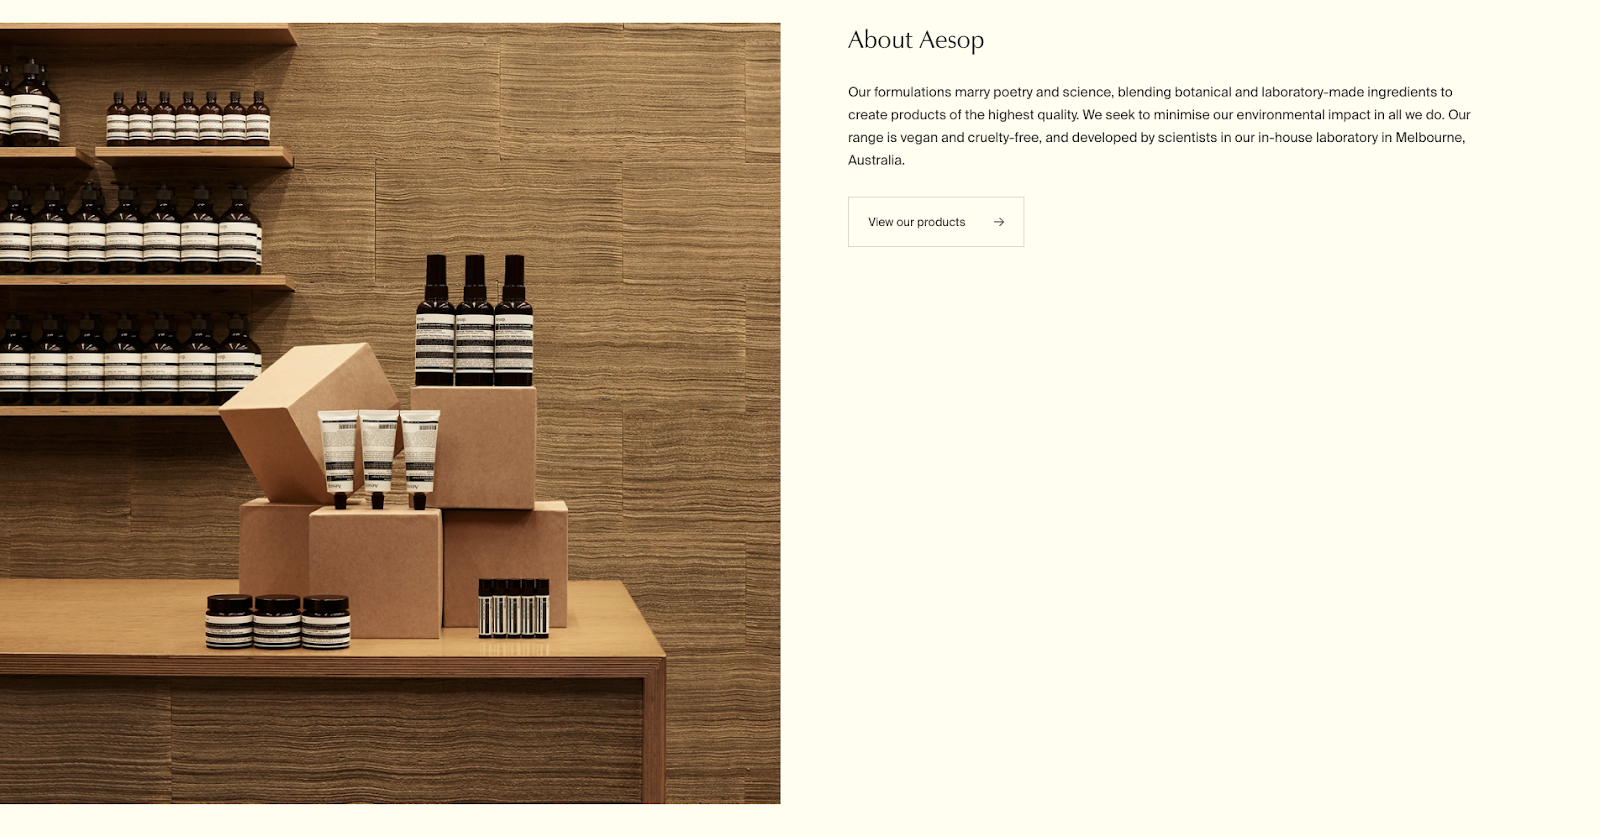 About Aesop Home Page Fold featuring product display